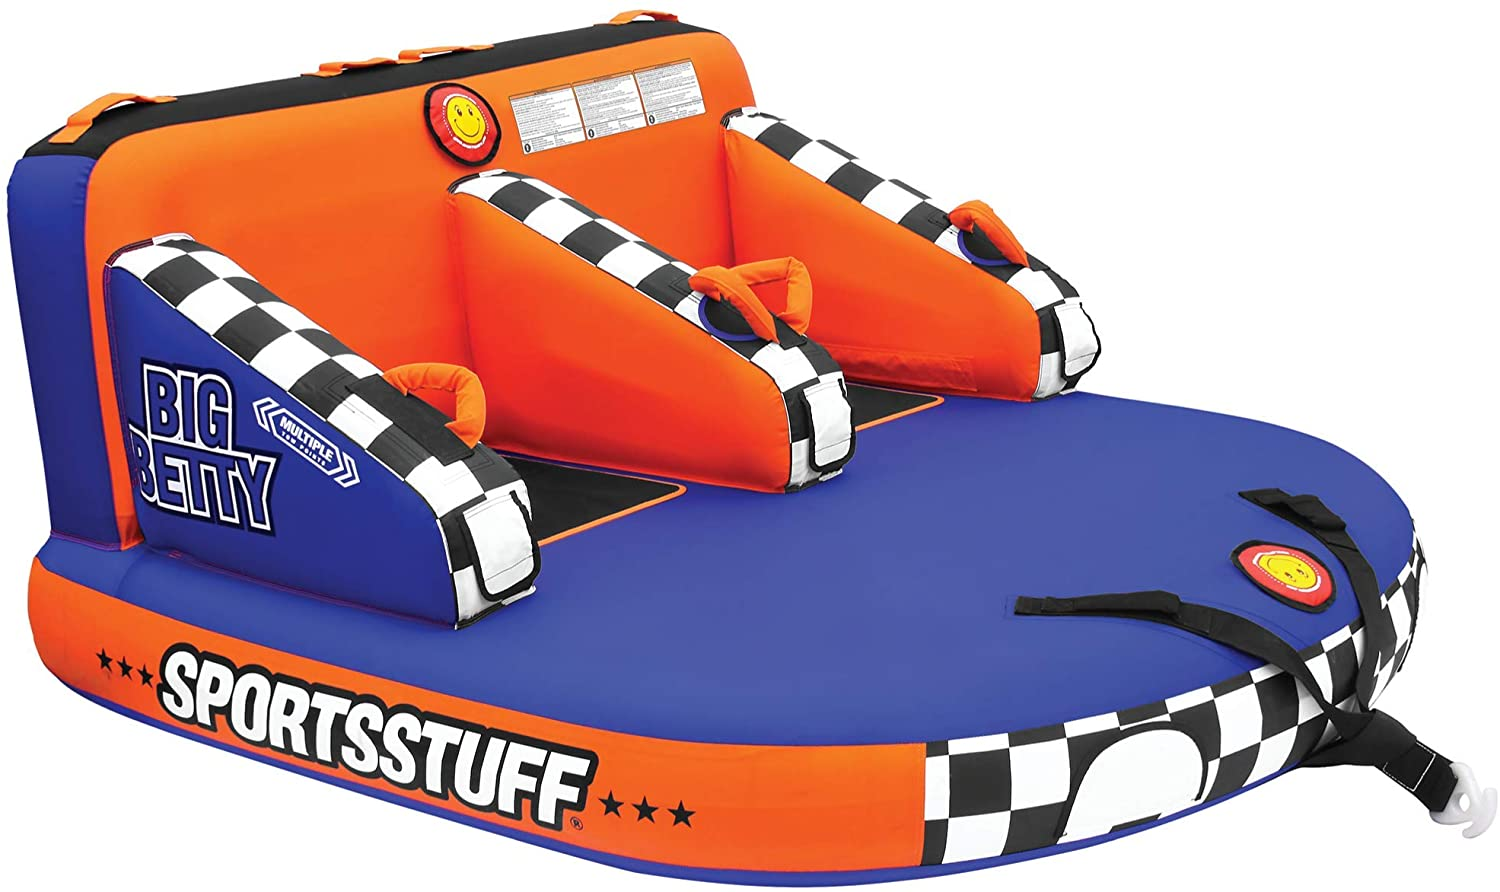 Best 2 Person Towable Tubes for Adults & Kids